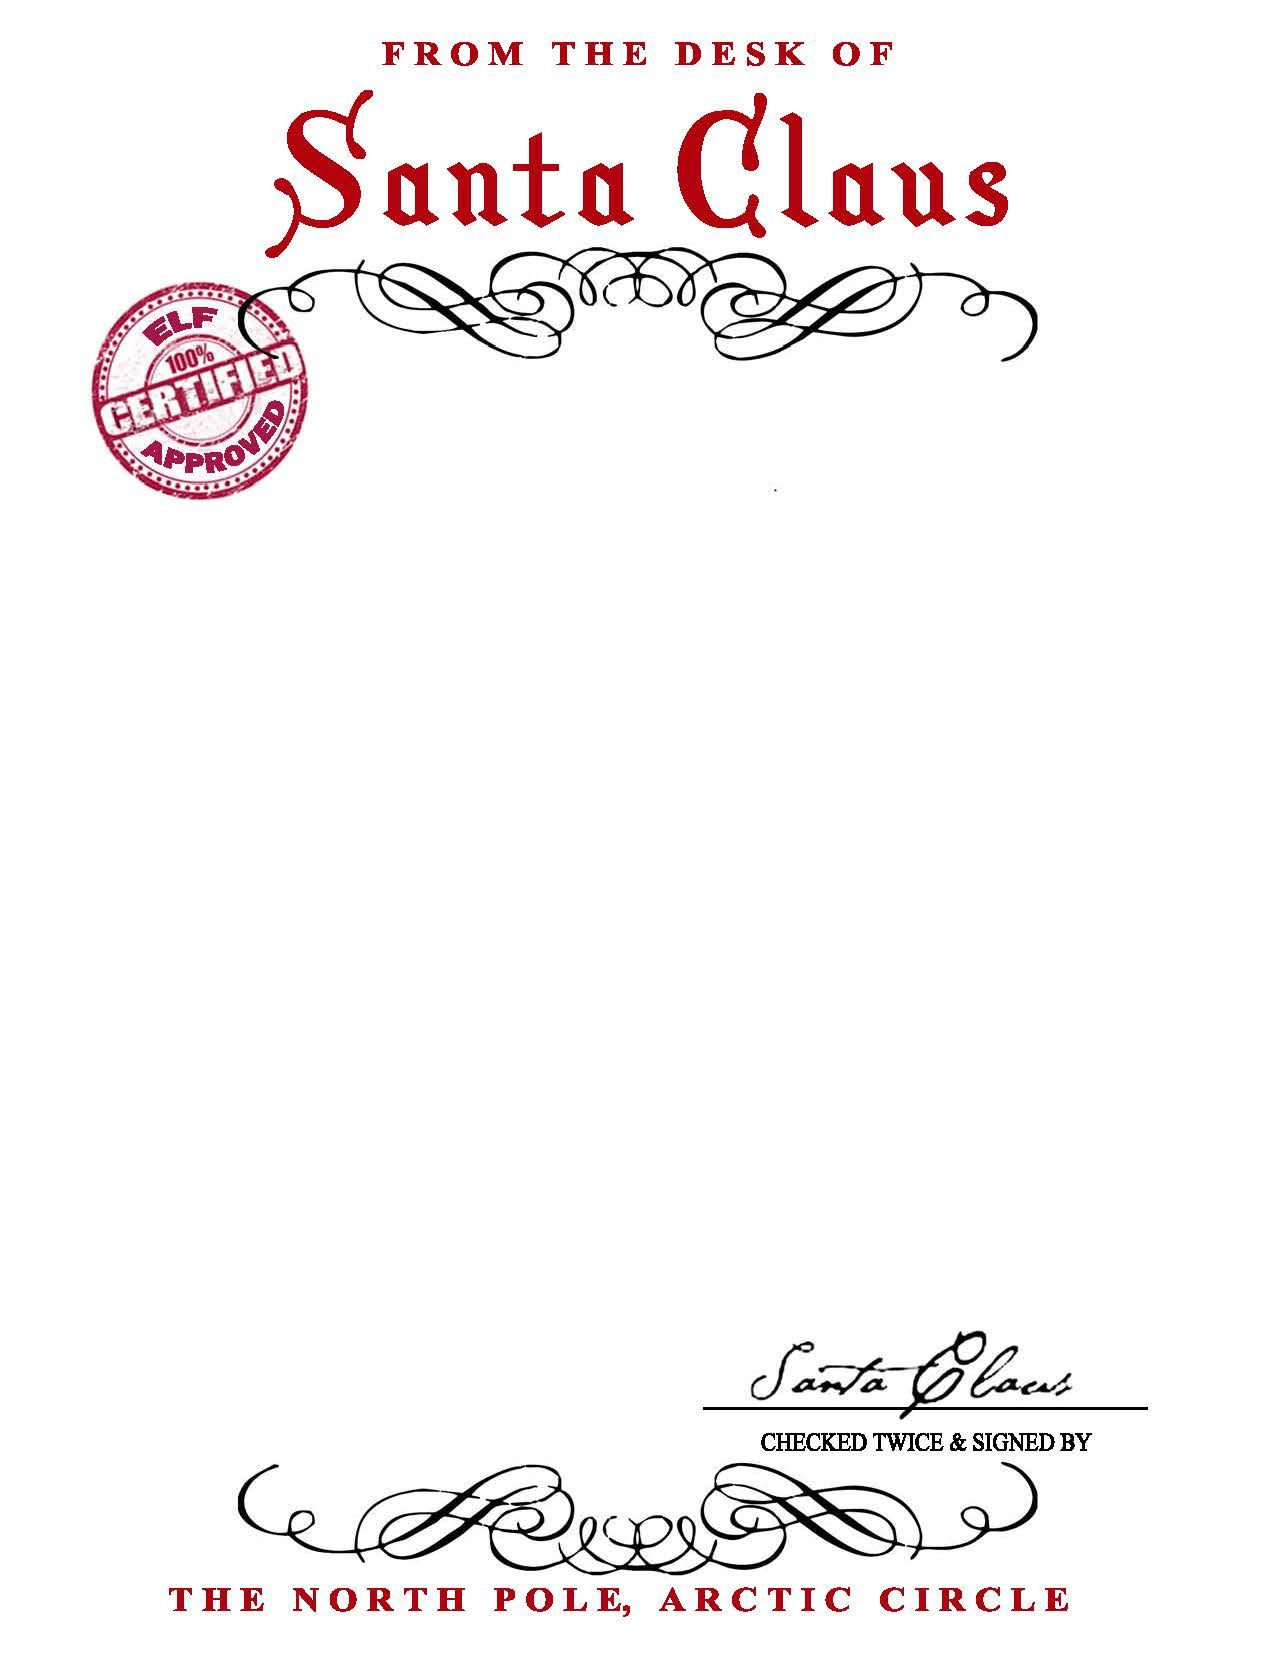 official letter from santa template example-SANTA CLAUS LETTERHEAD Will bring lots of joy to children 5-l